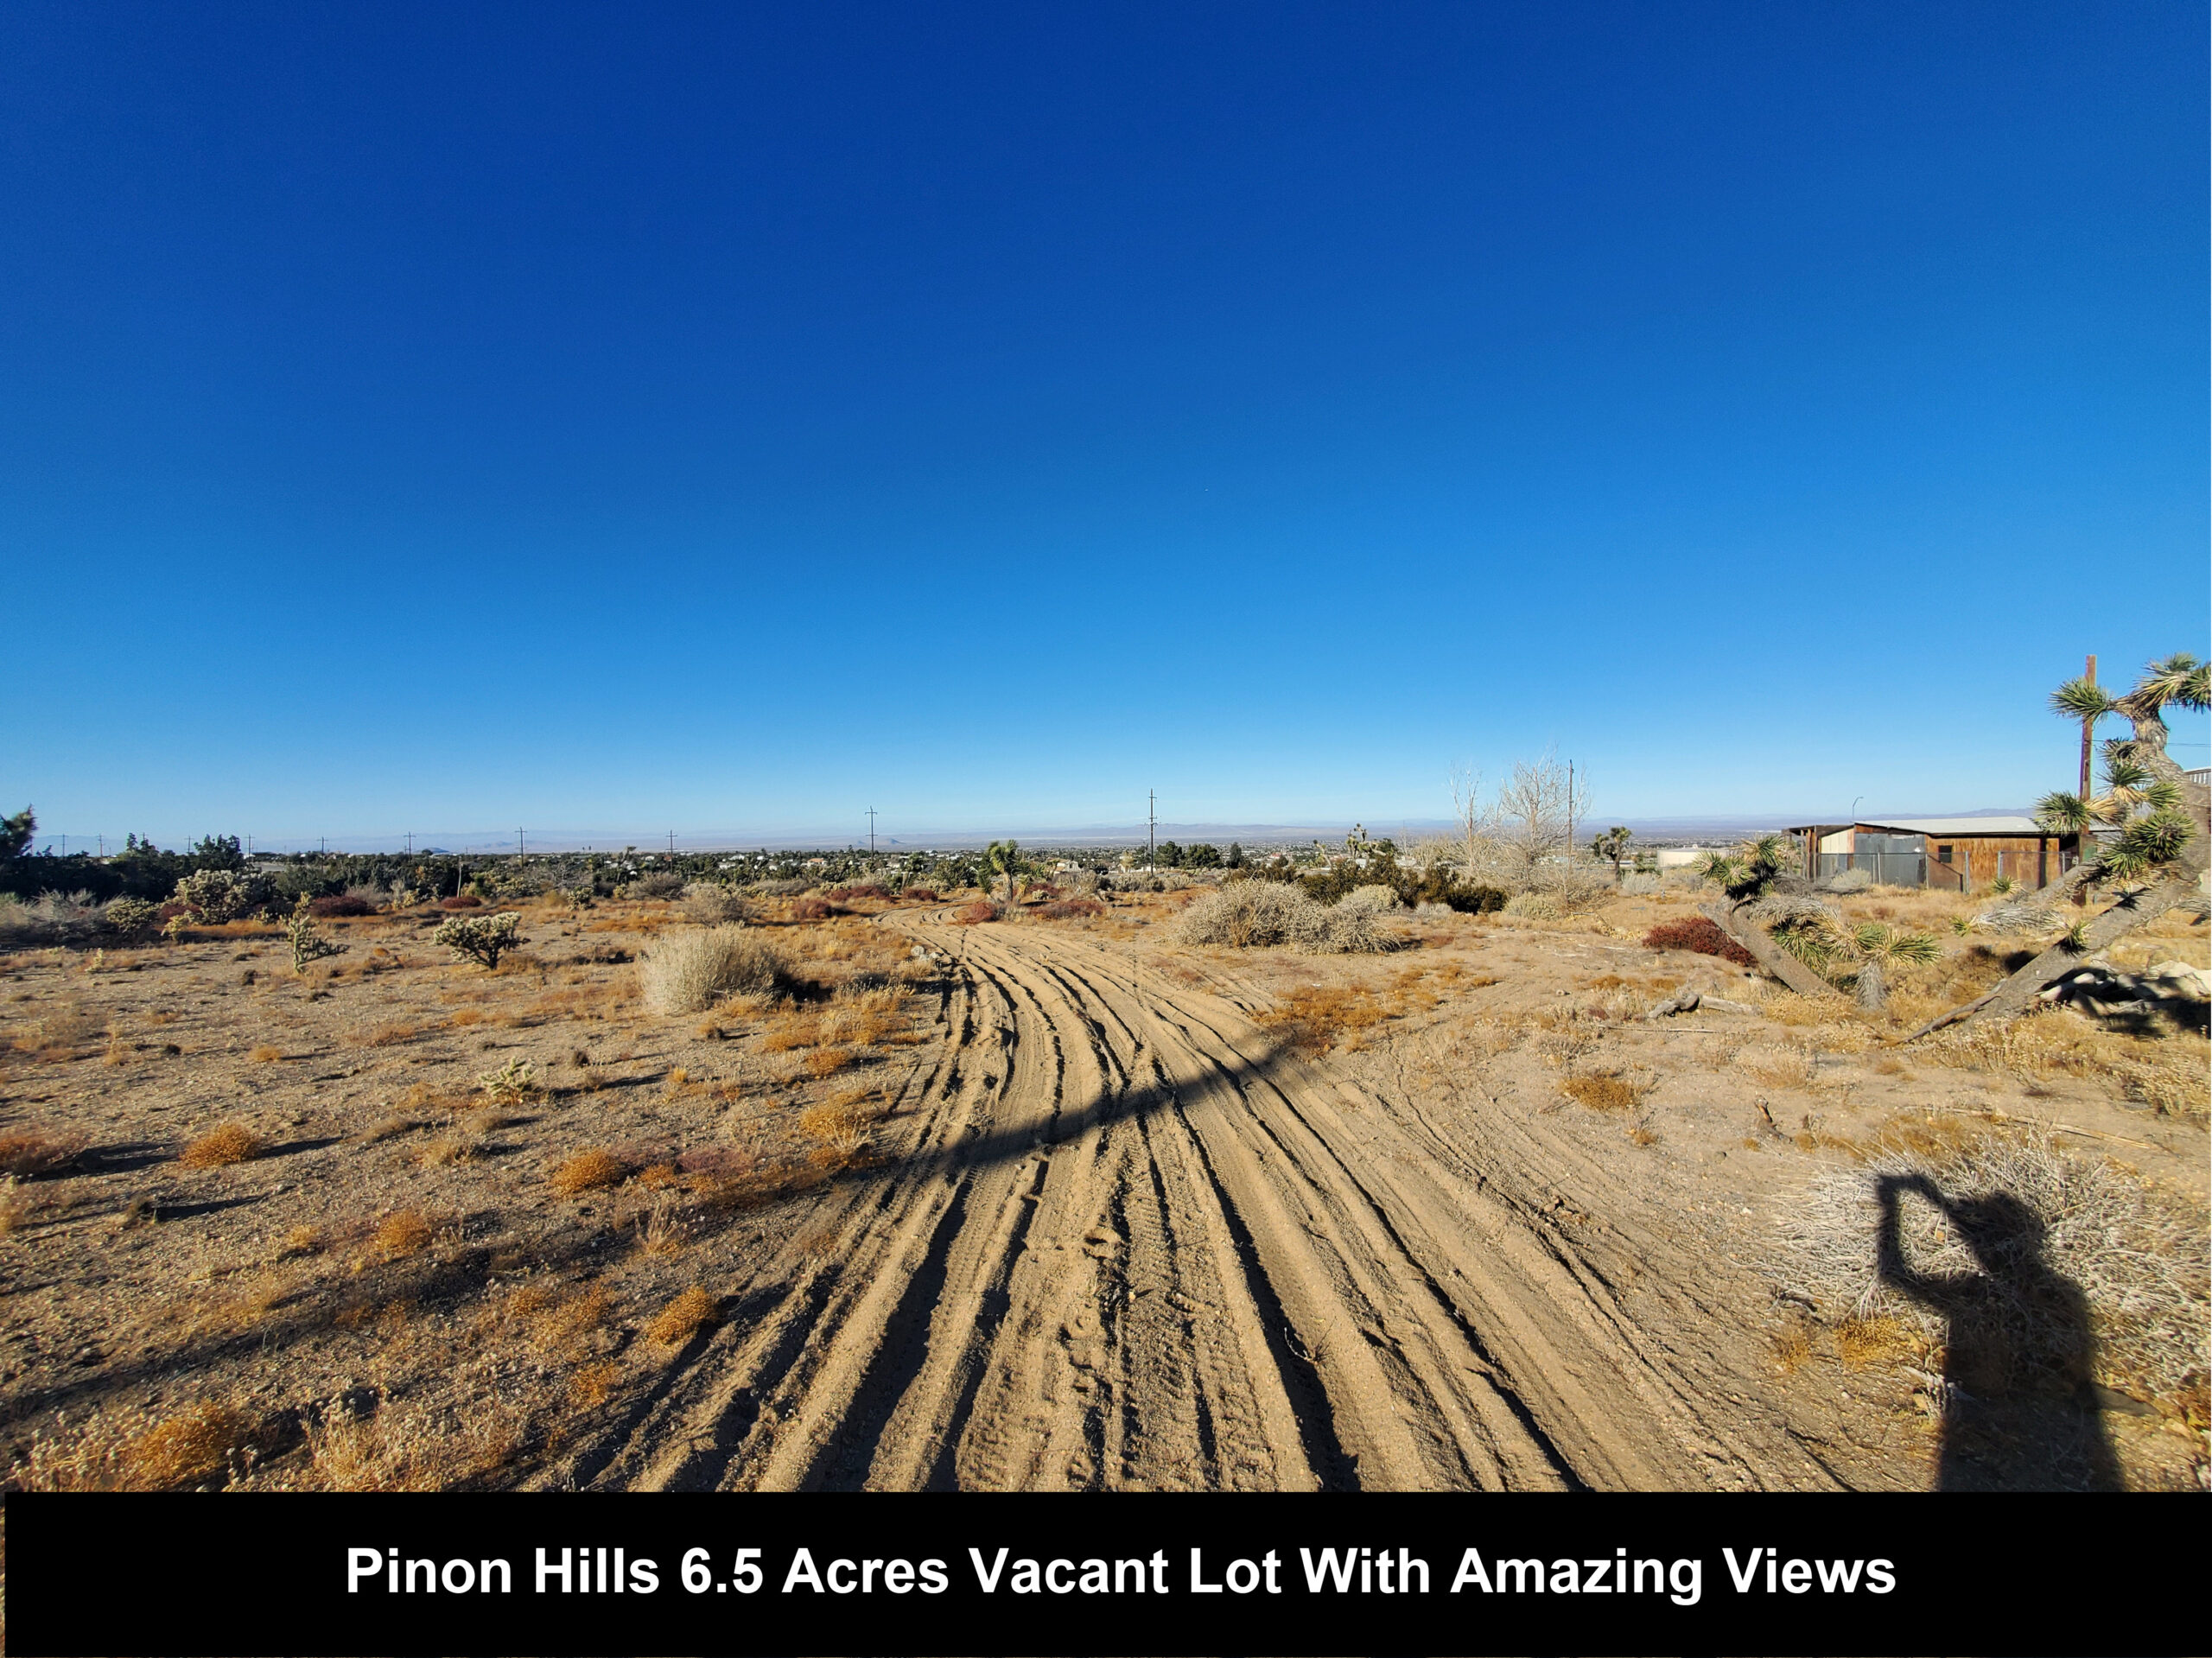 6.41 Acre Pinon Hills Vacant Lot With AMAZING Mountain Views With Water, Electricity And Houses Near